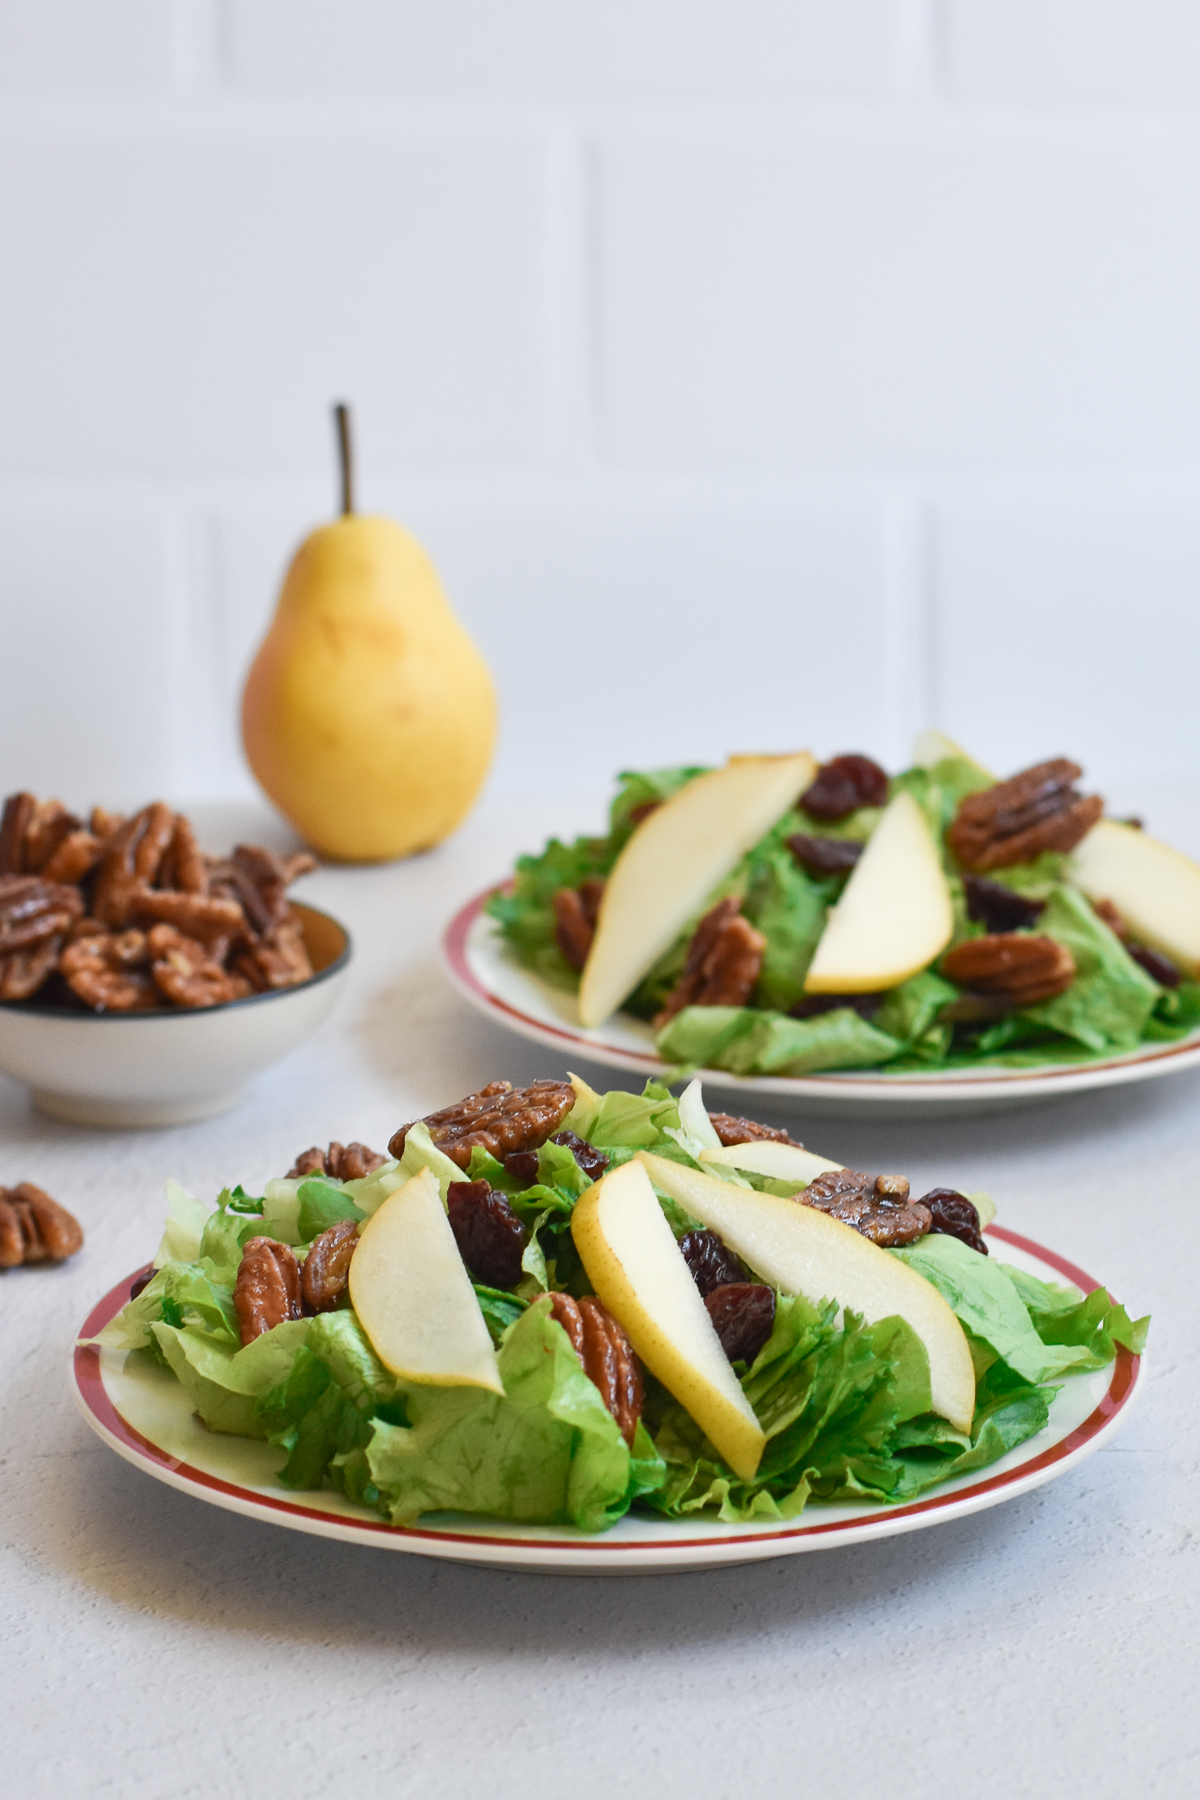 Pear Salad with Candied Pecans and Balsamic Vinaigrette